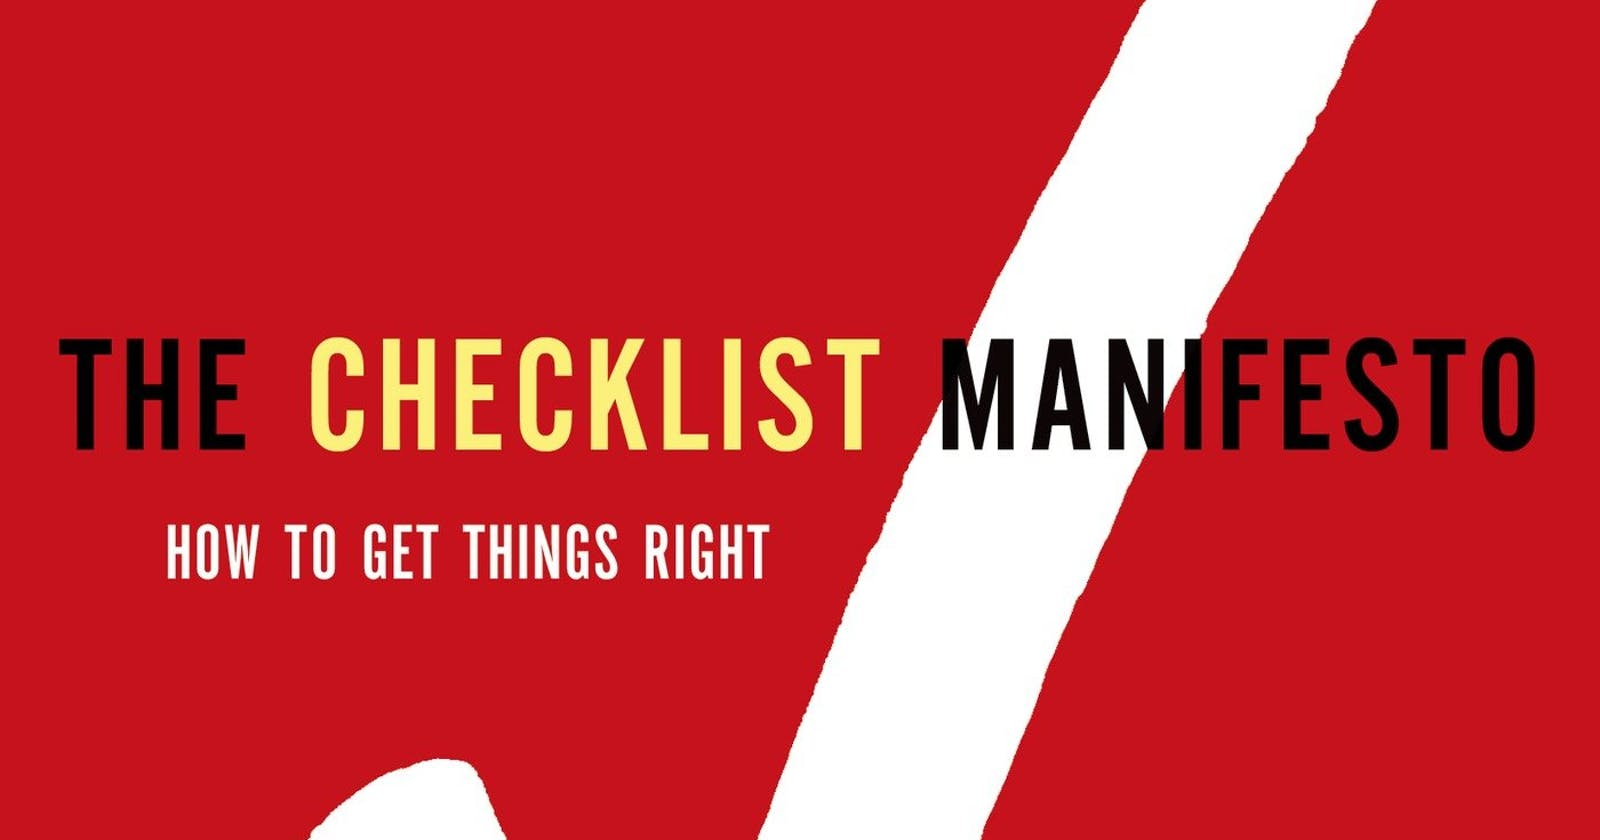 Book Review - The Checklist Manifesto by Atul Gawande